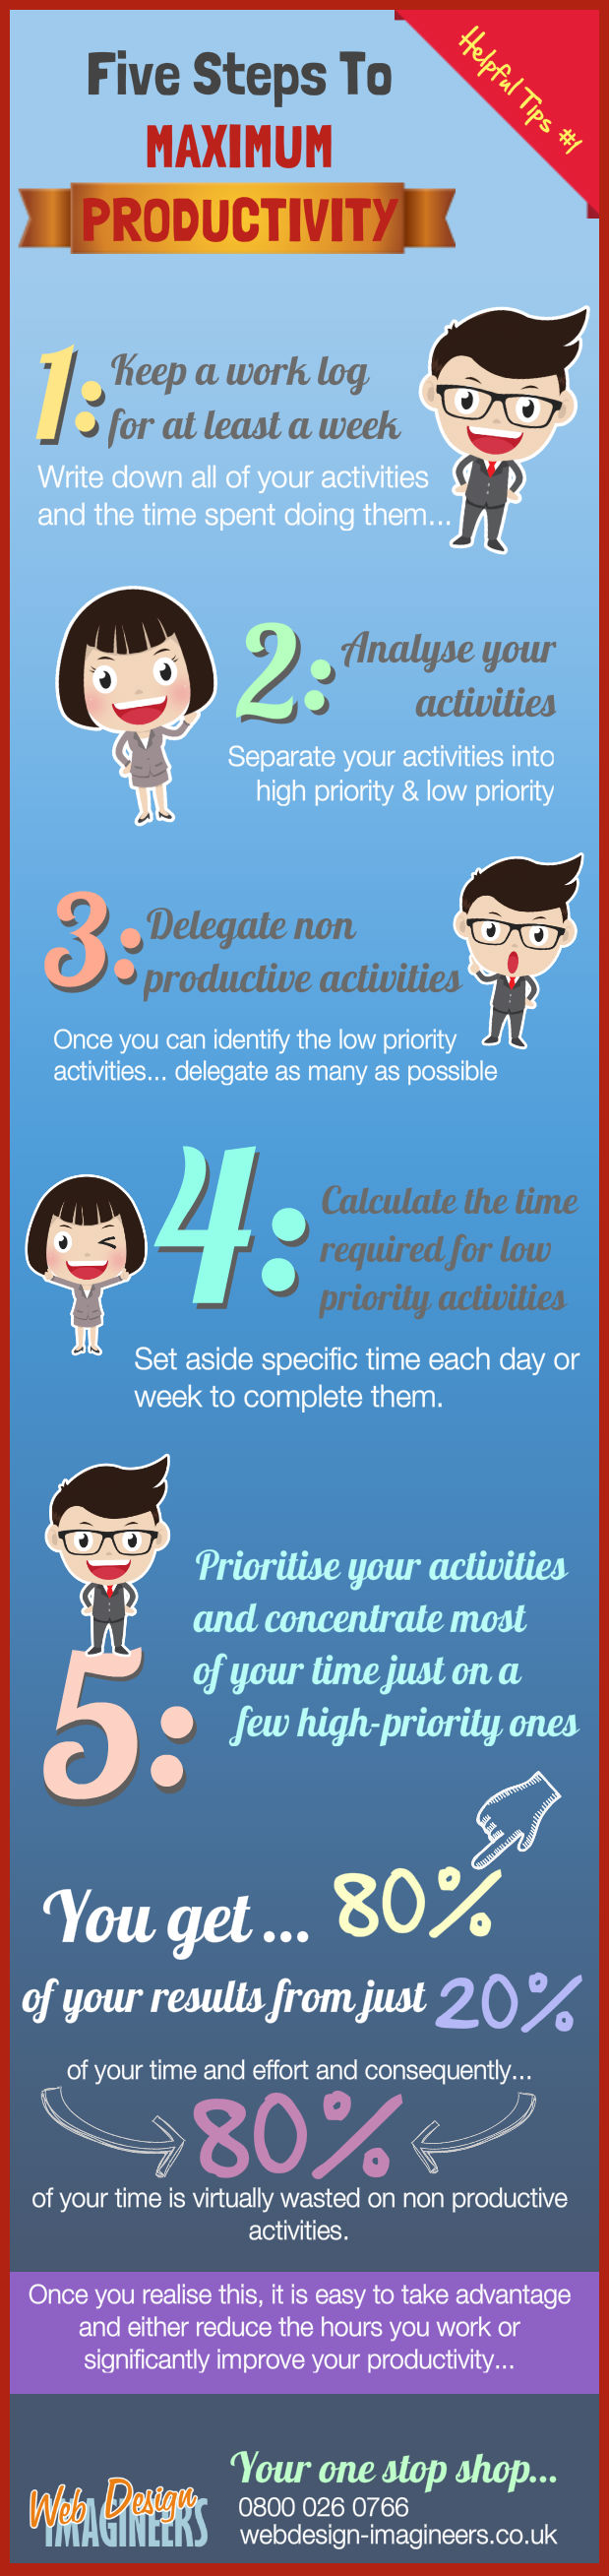 Maximum Productivity Infographic